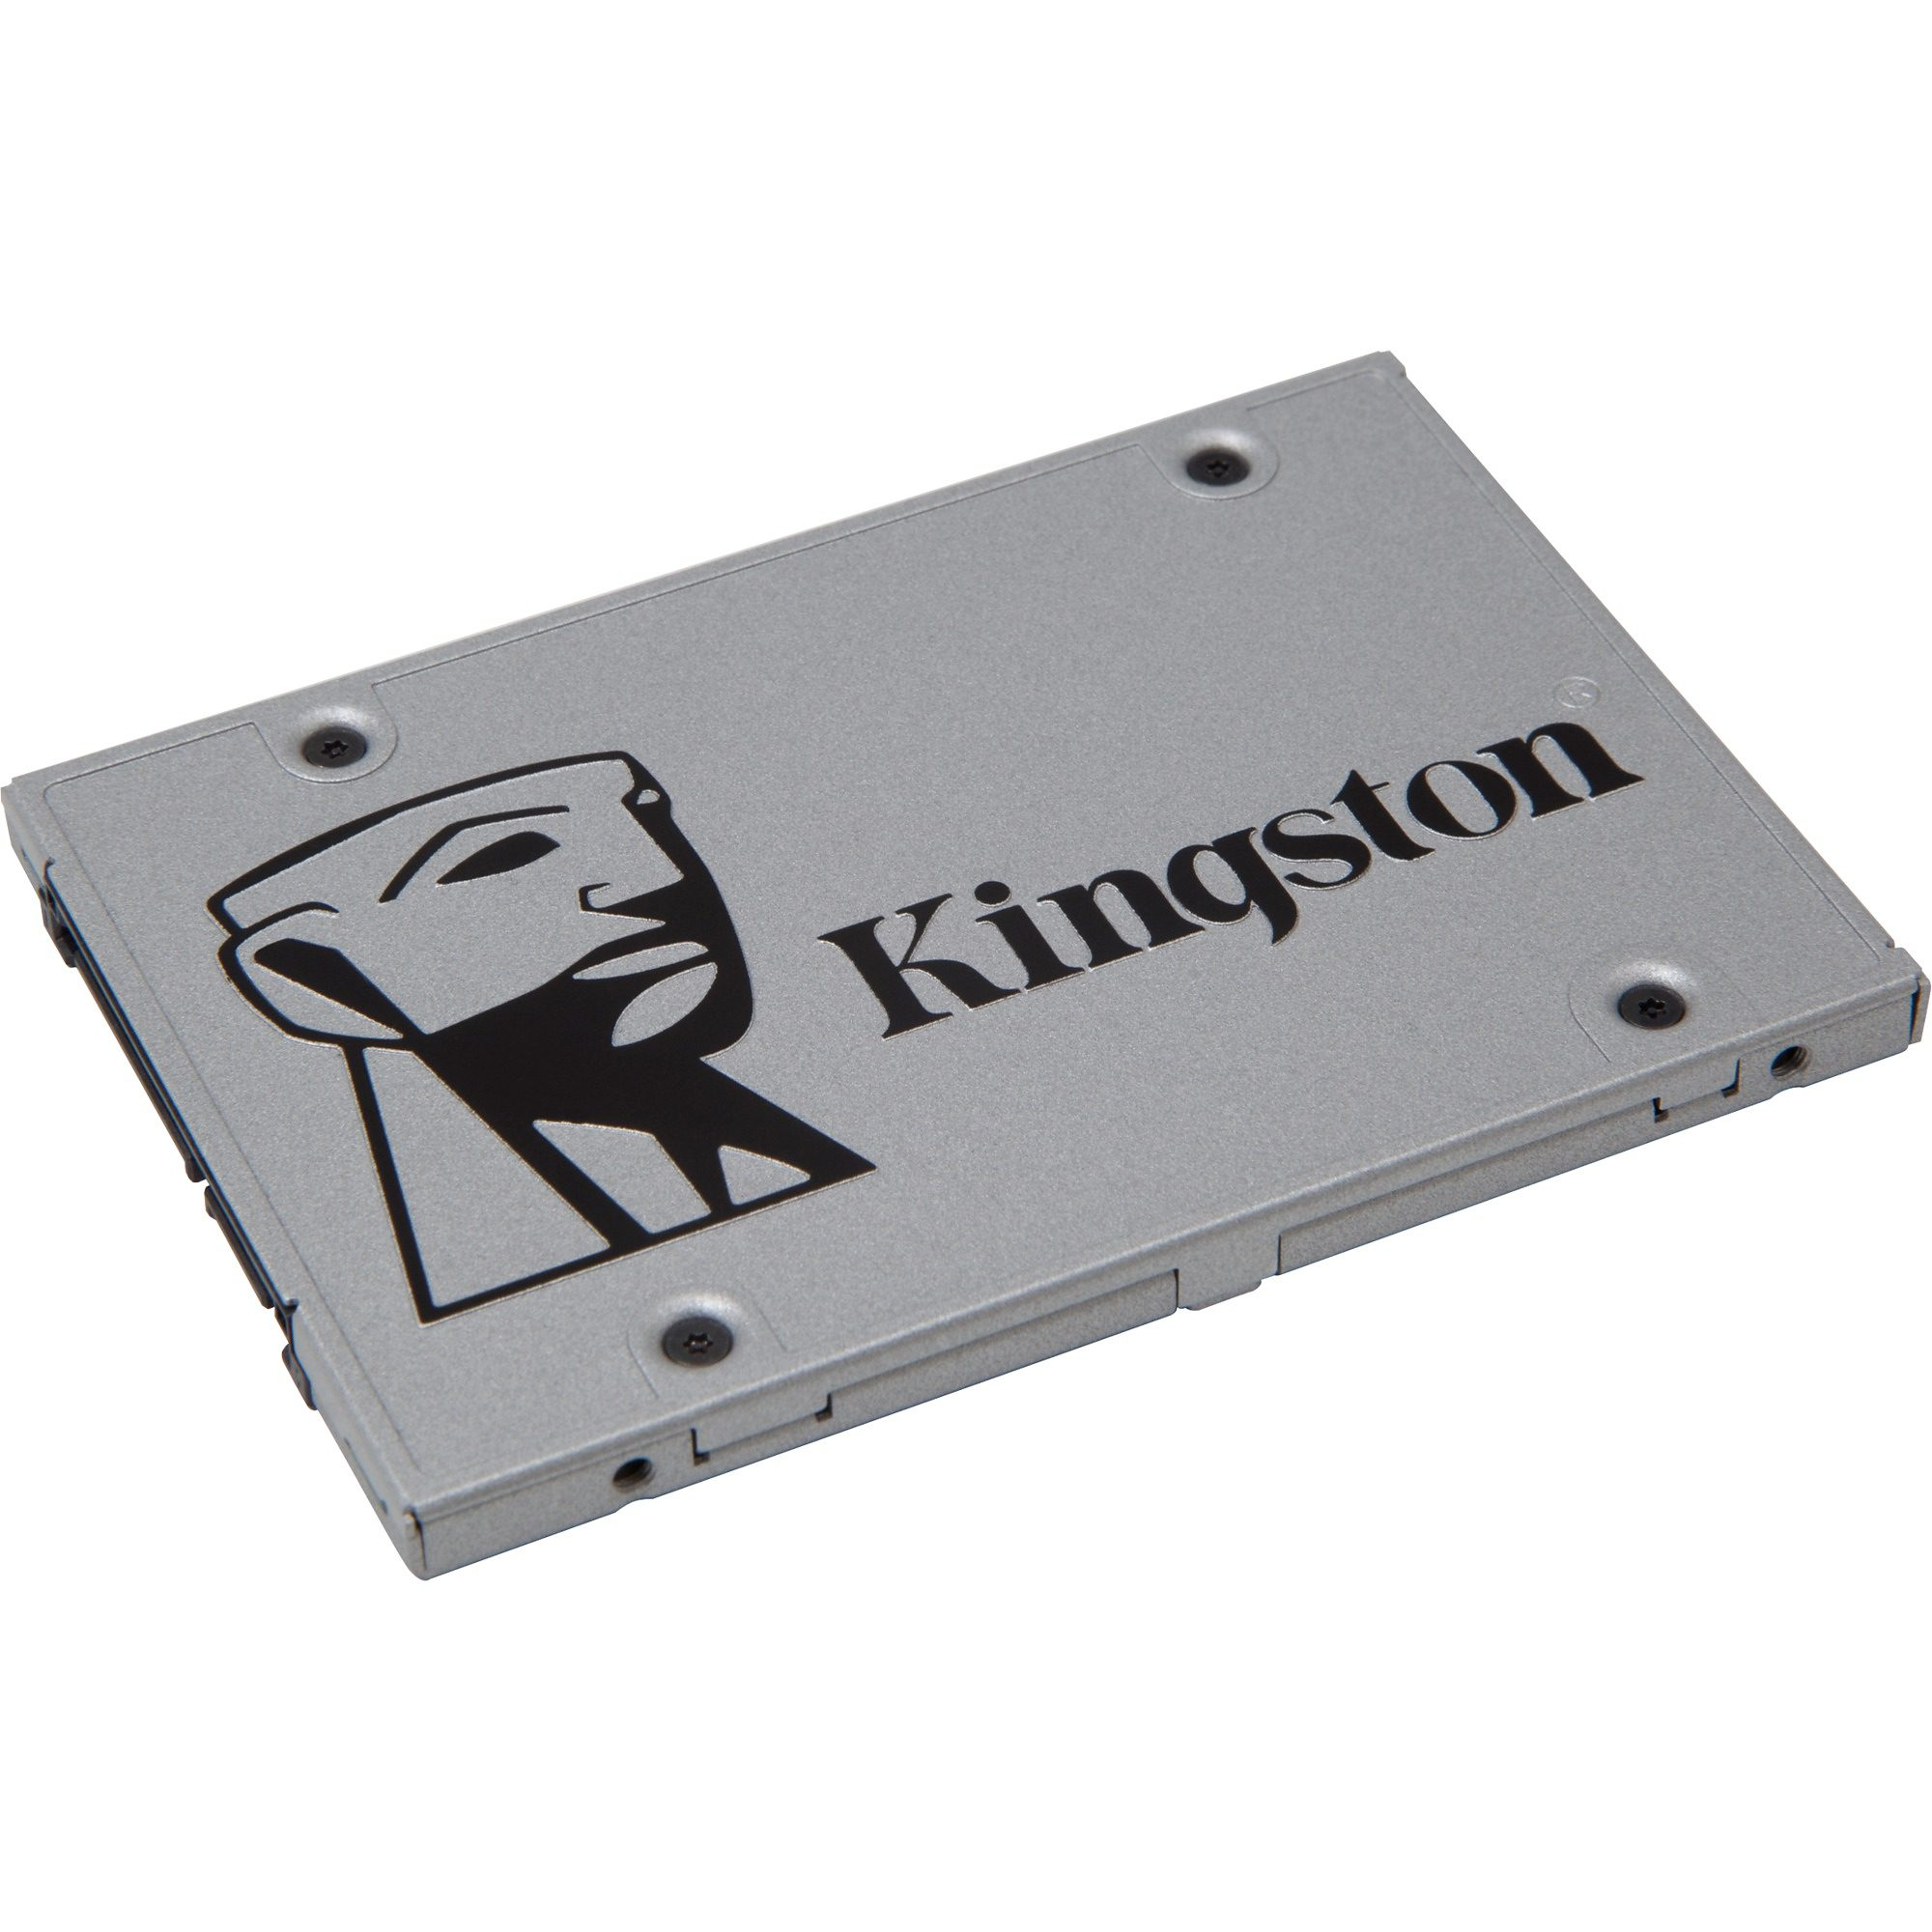 Kingston Solid State Drive »SUV400S37/480G 480 GB«